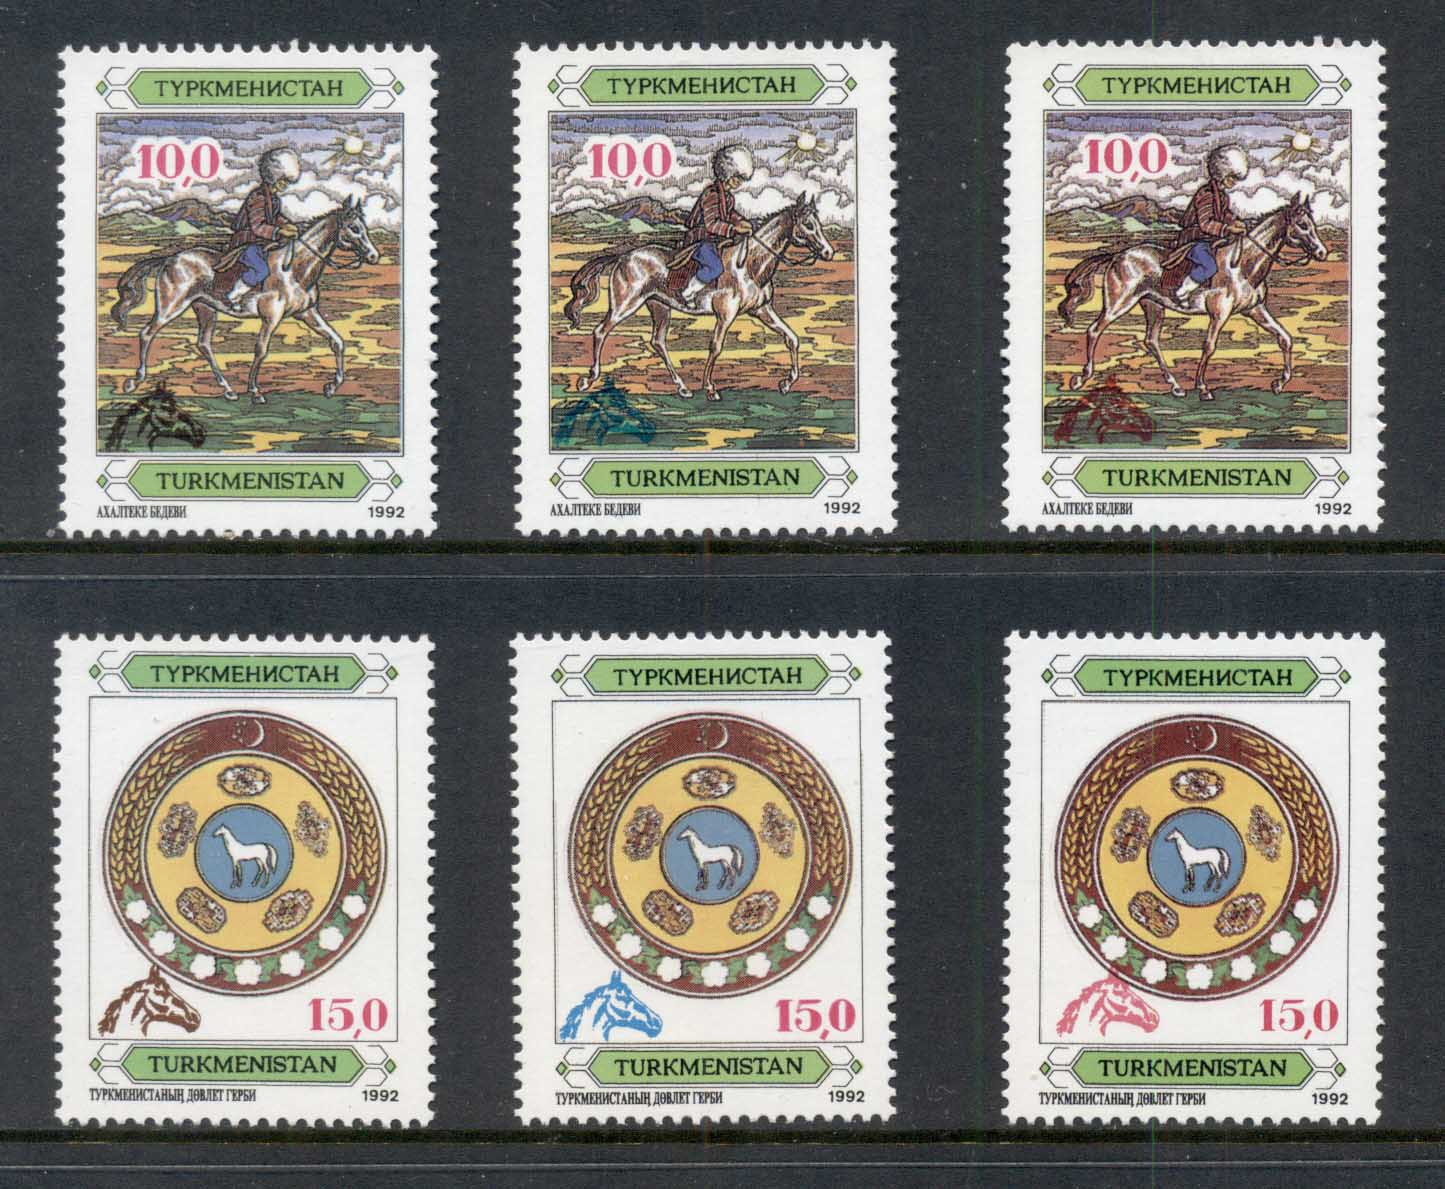 Turkmenistan Overprints with Horses head (6/9) MUH